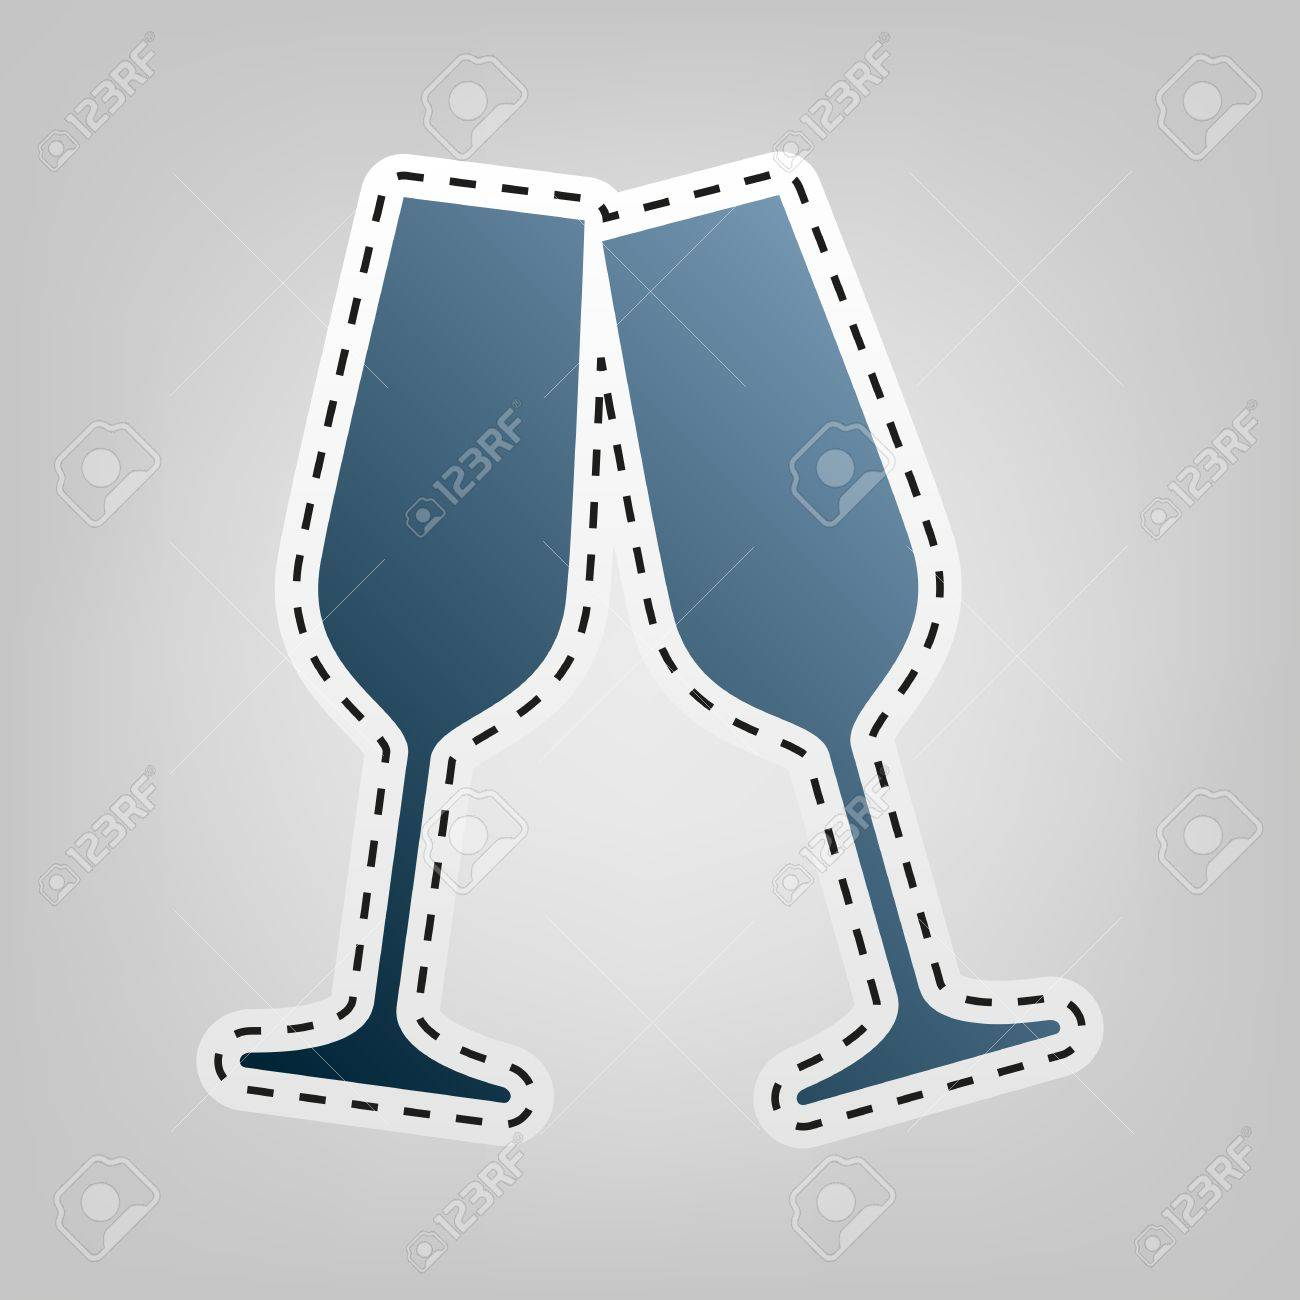 cf0770c0a8 Sparkling champagne glasses. Vector. Blue icon with outline for cutting out  at gray background